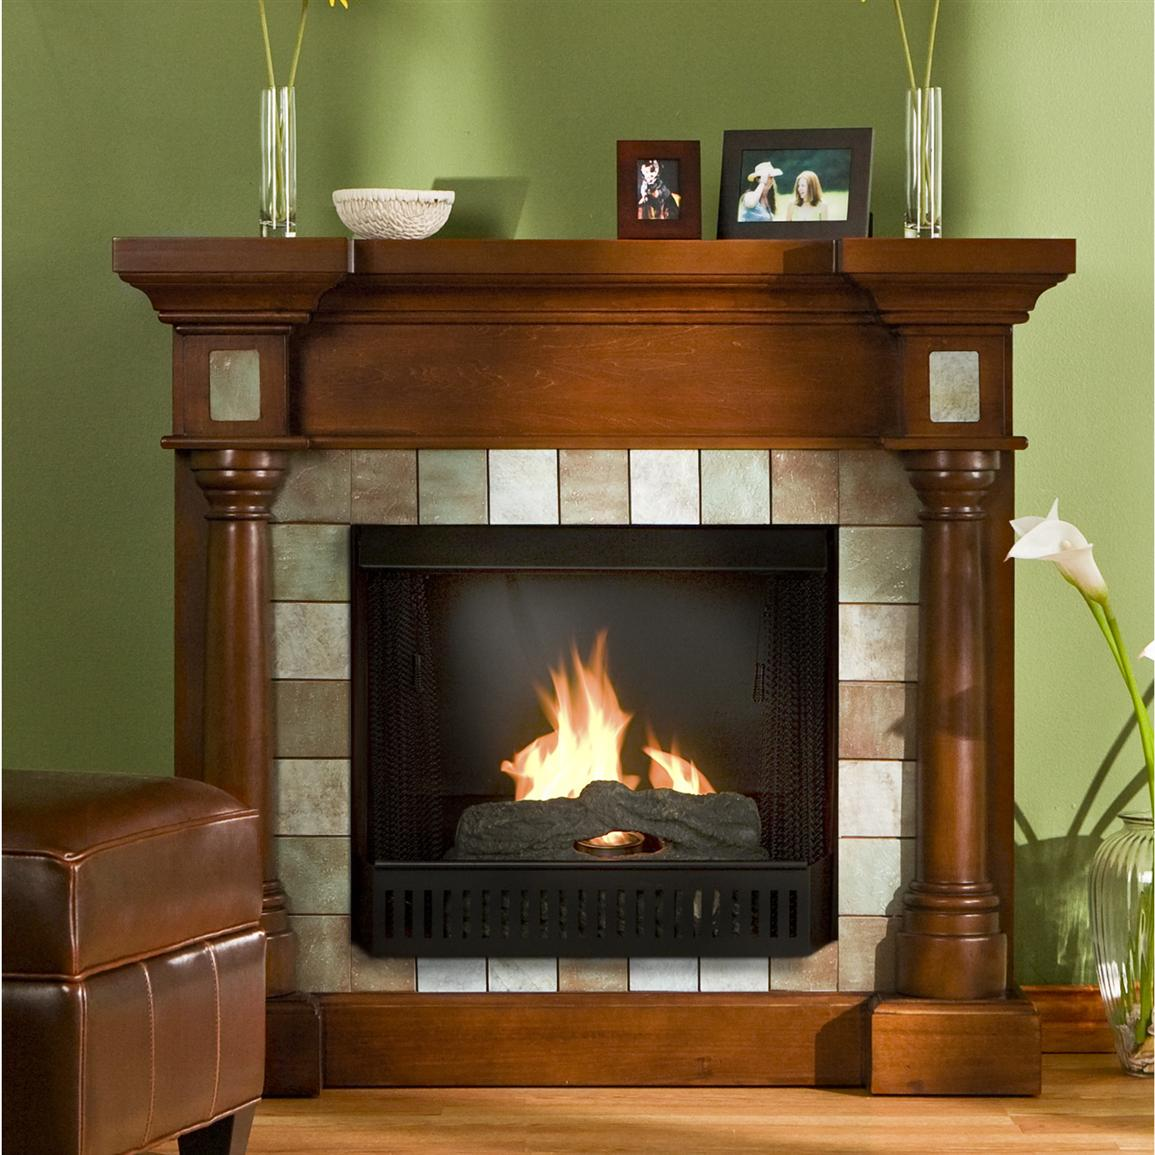 Southern Enterprises Inc Slate Gel Fuel Fireplace 145319 Fireplaces At Sportsman 39 S Guide